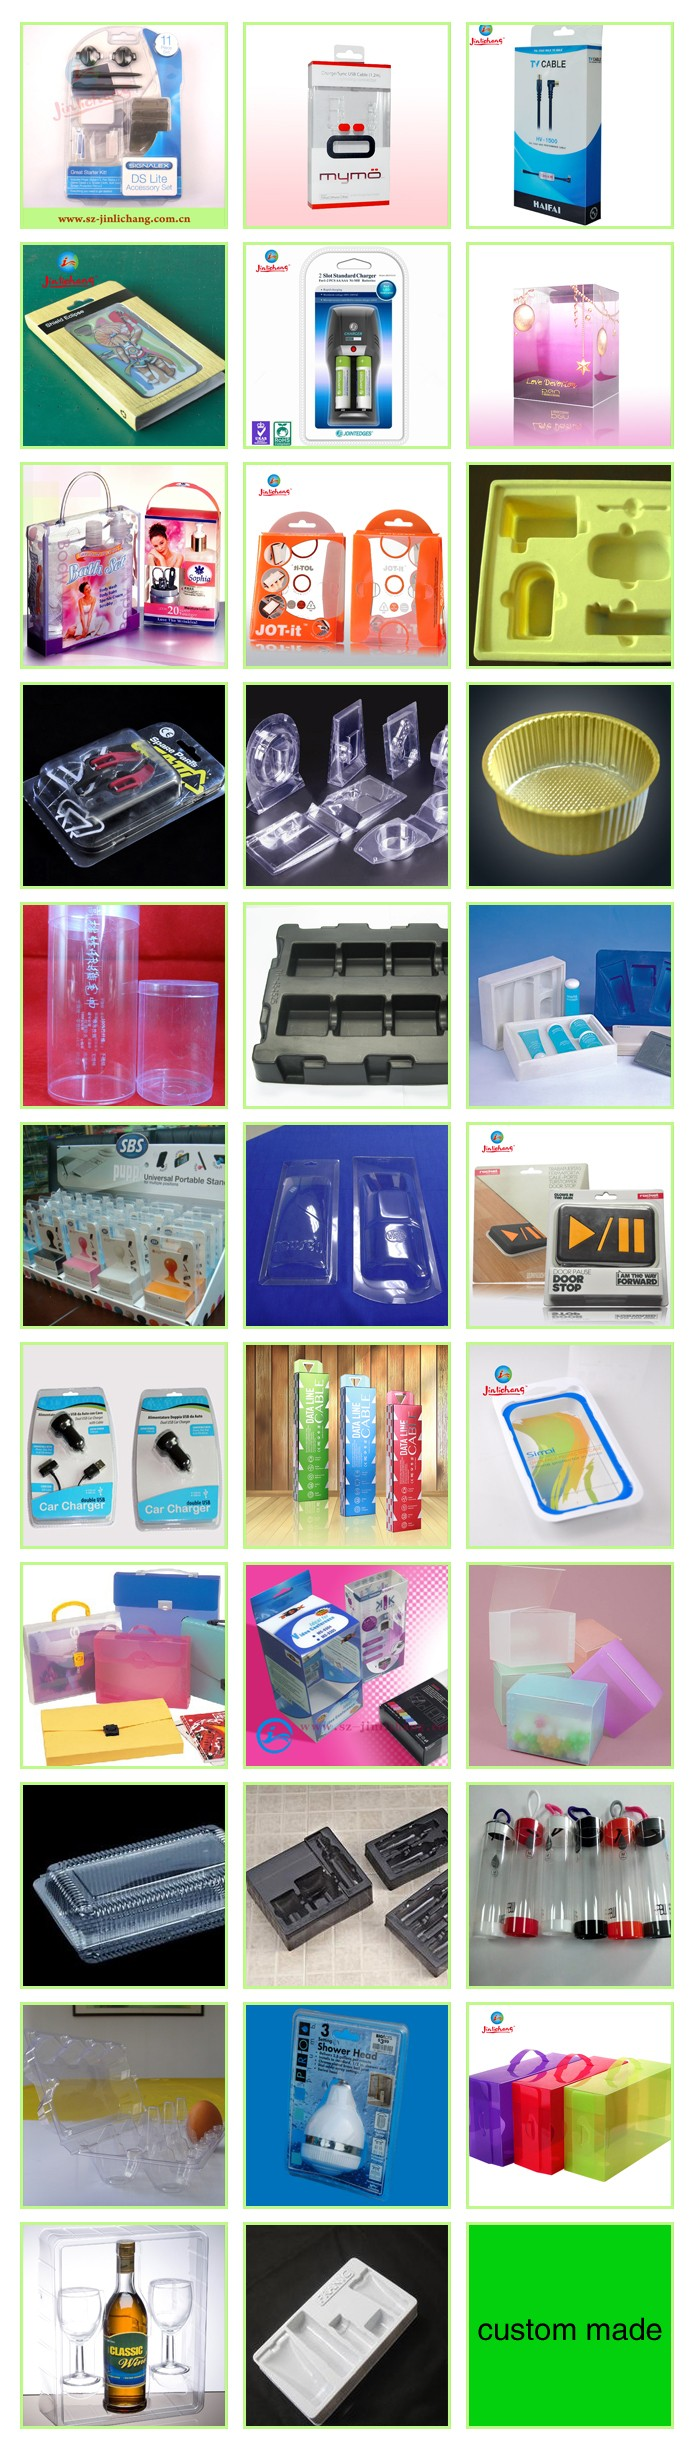 Soft Crease Auto Bottom Clear Plastic Box Plastic Packaging Box